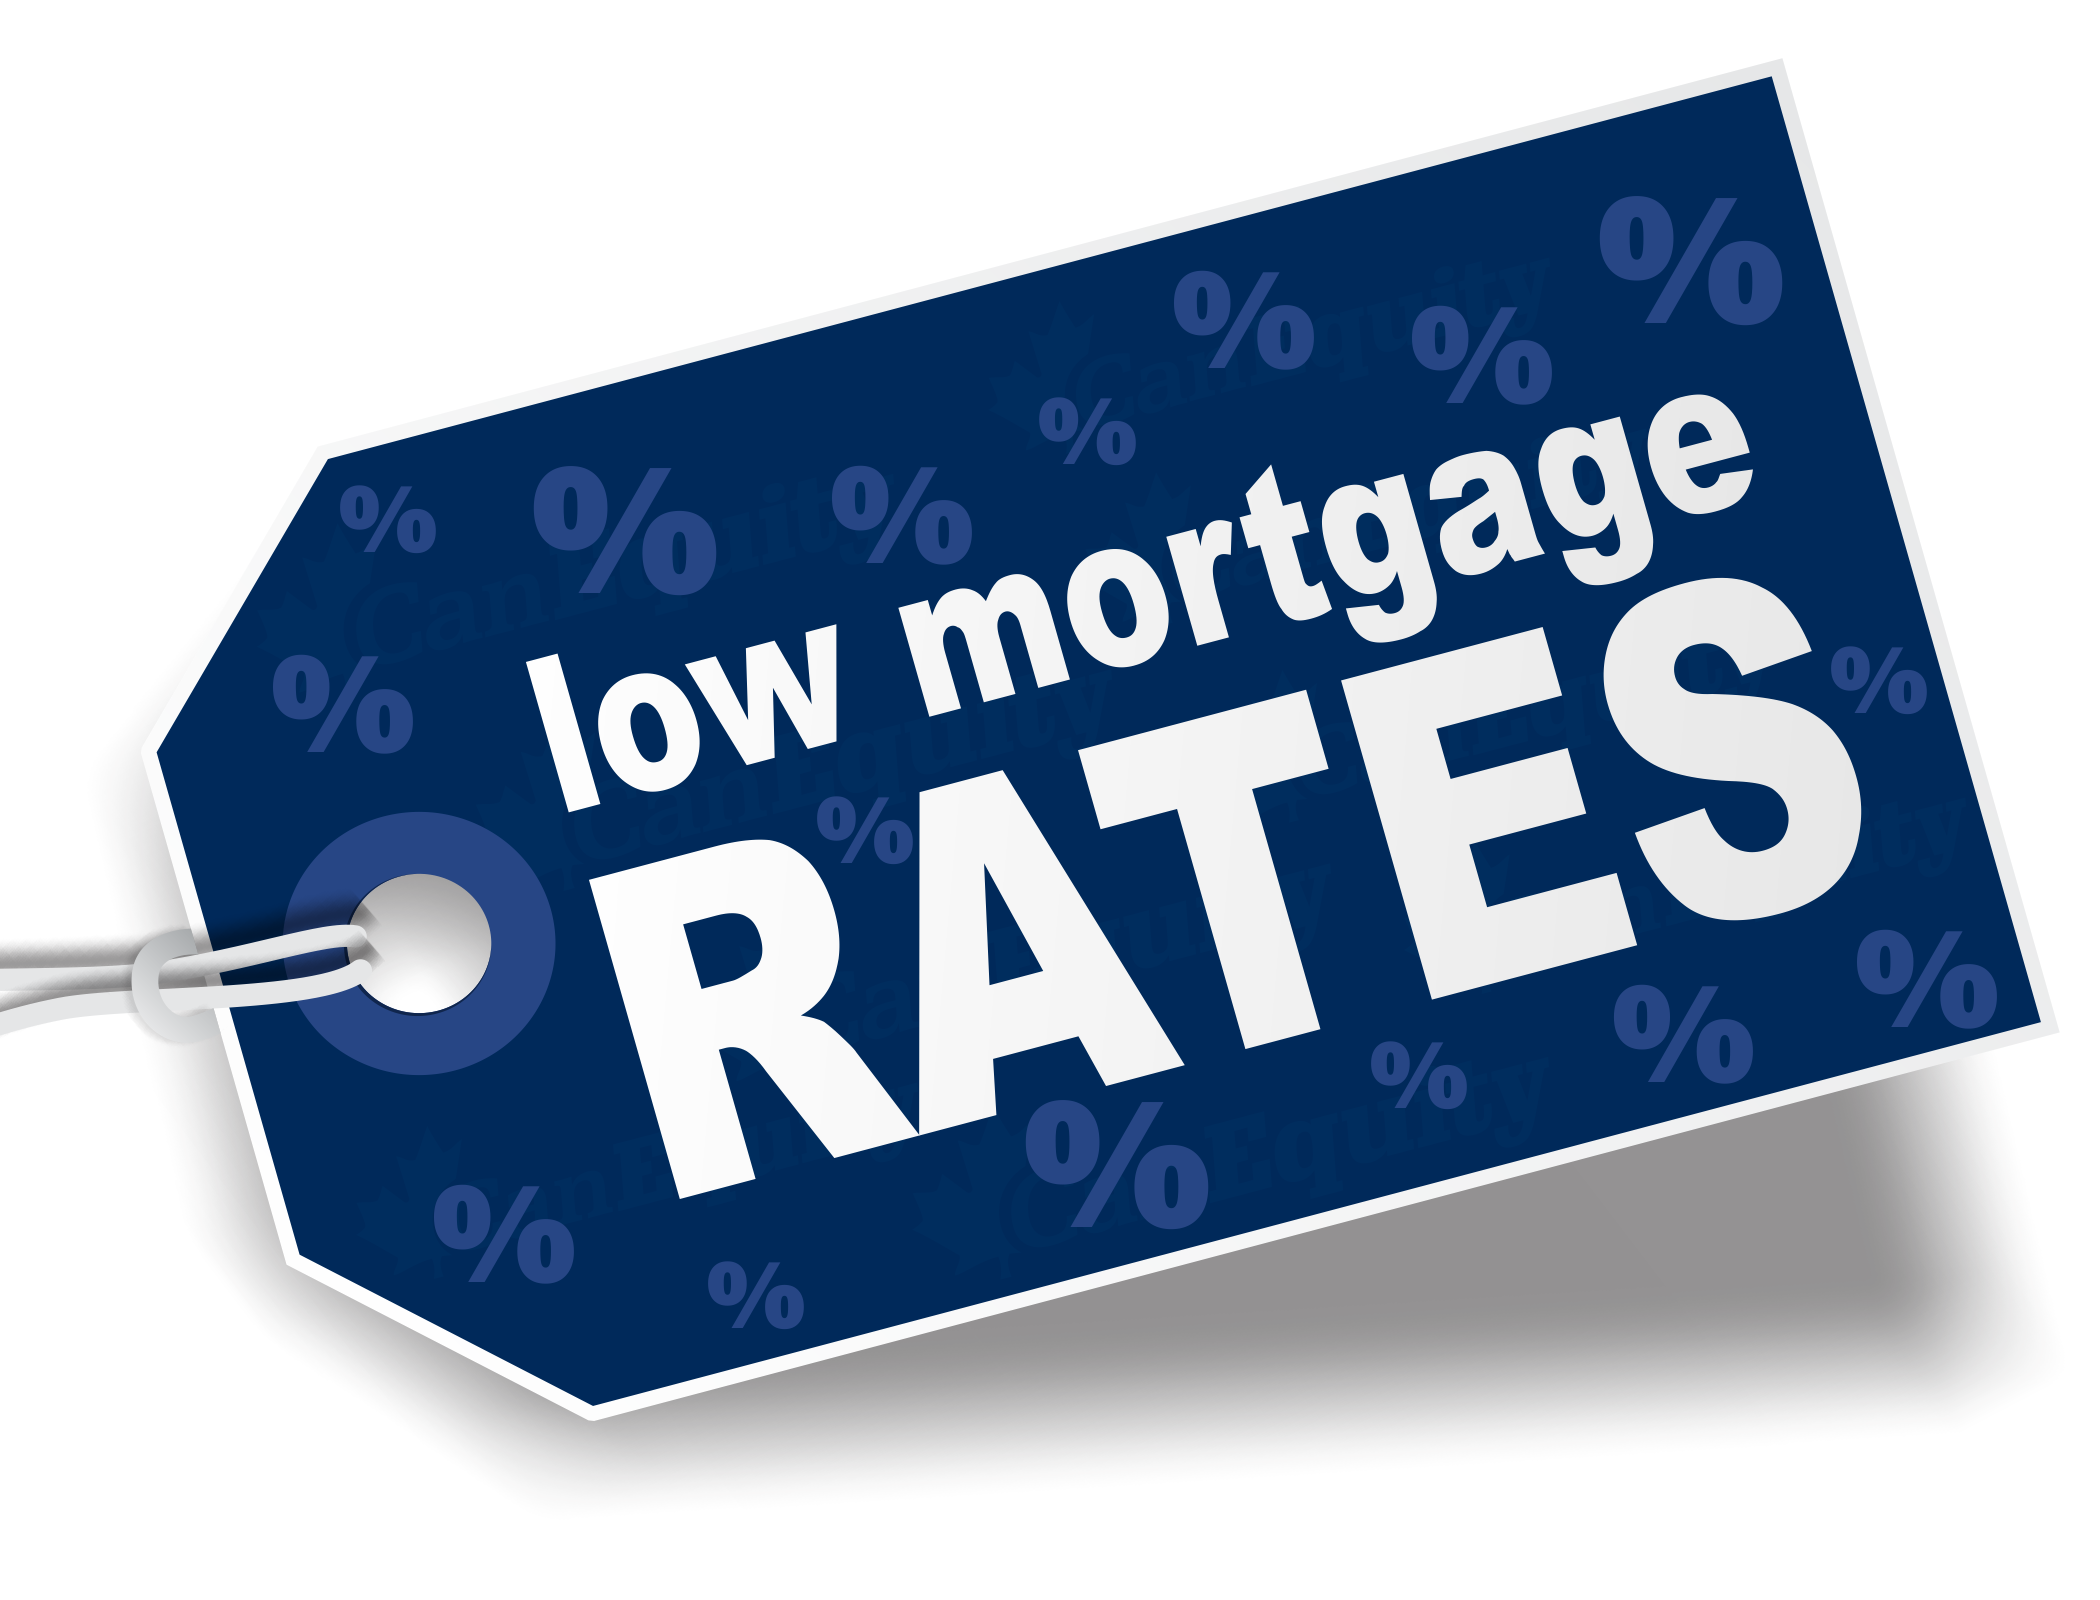 We Have Great Rates Today!